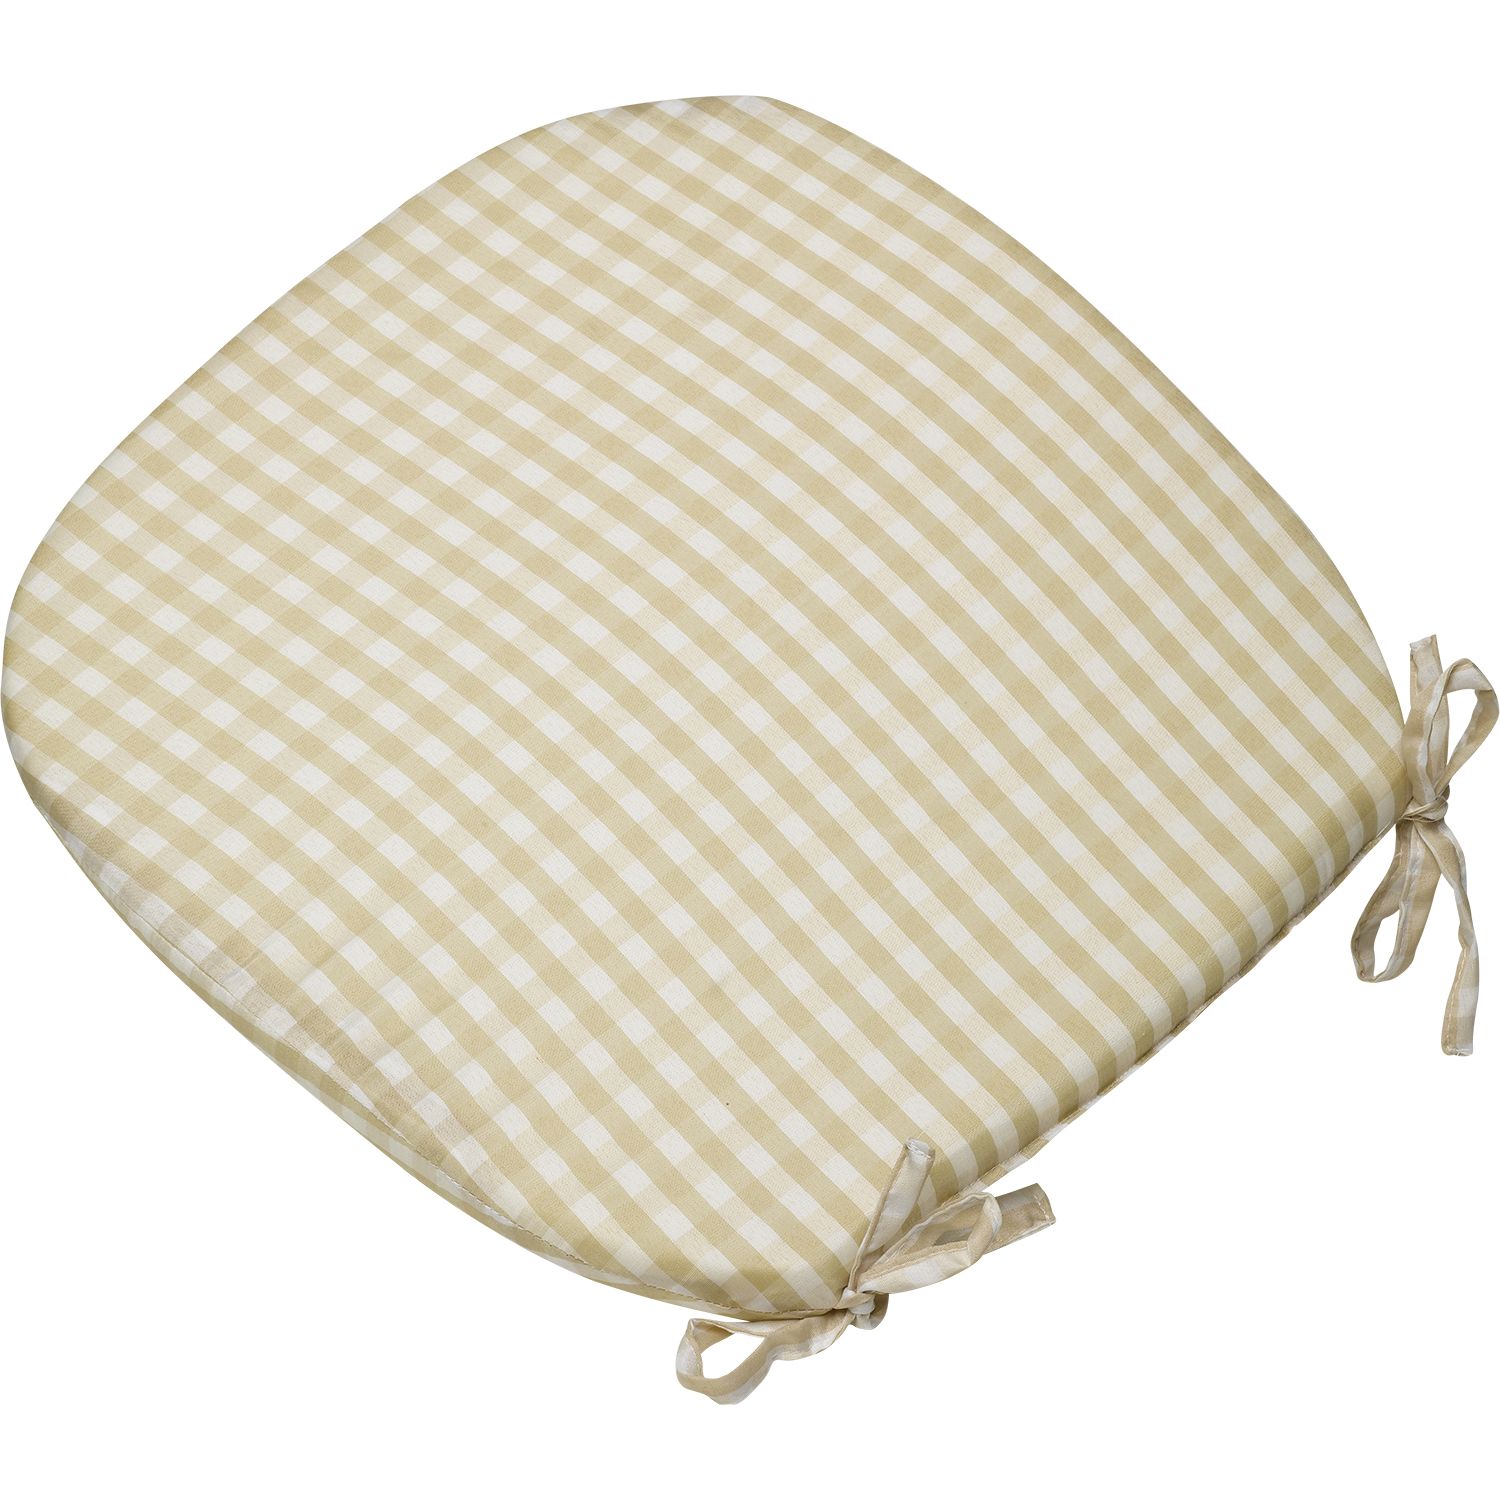 Checked seatpad dining kitchen garden chair seat cushion for Chair cushion covers with ties